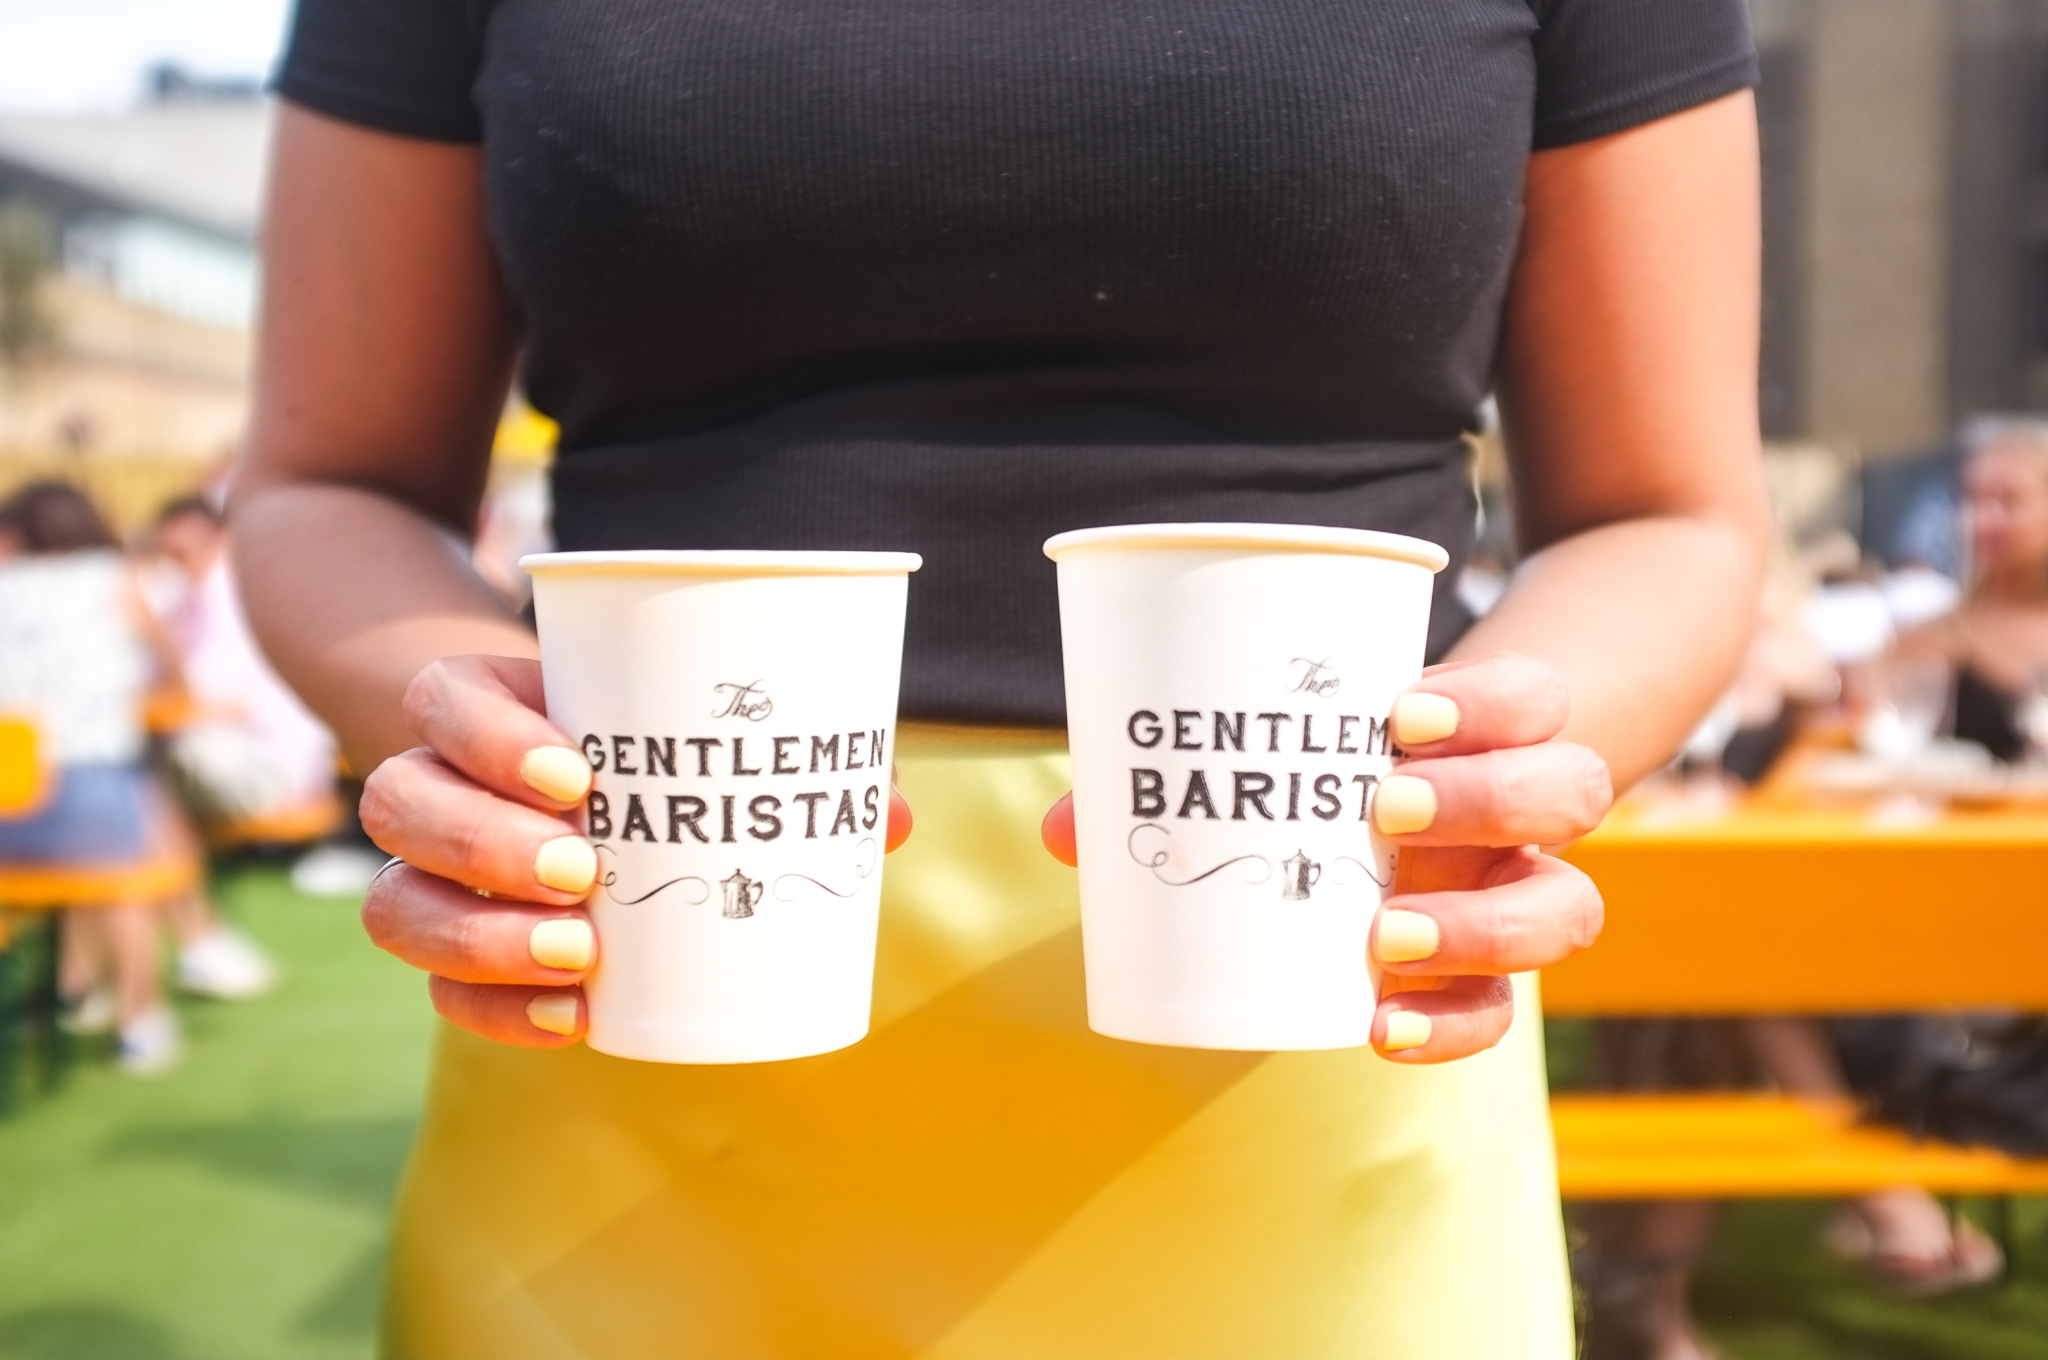 Our stylish drinks from Gentlemen Baristas